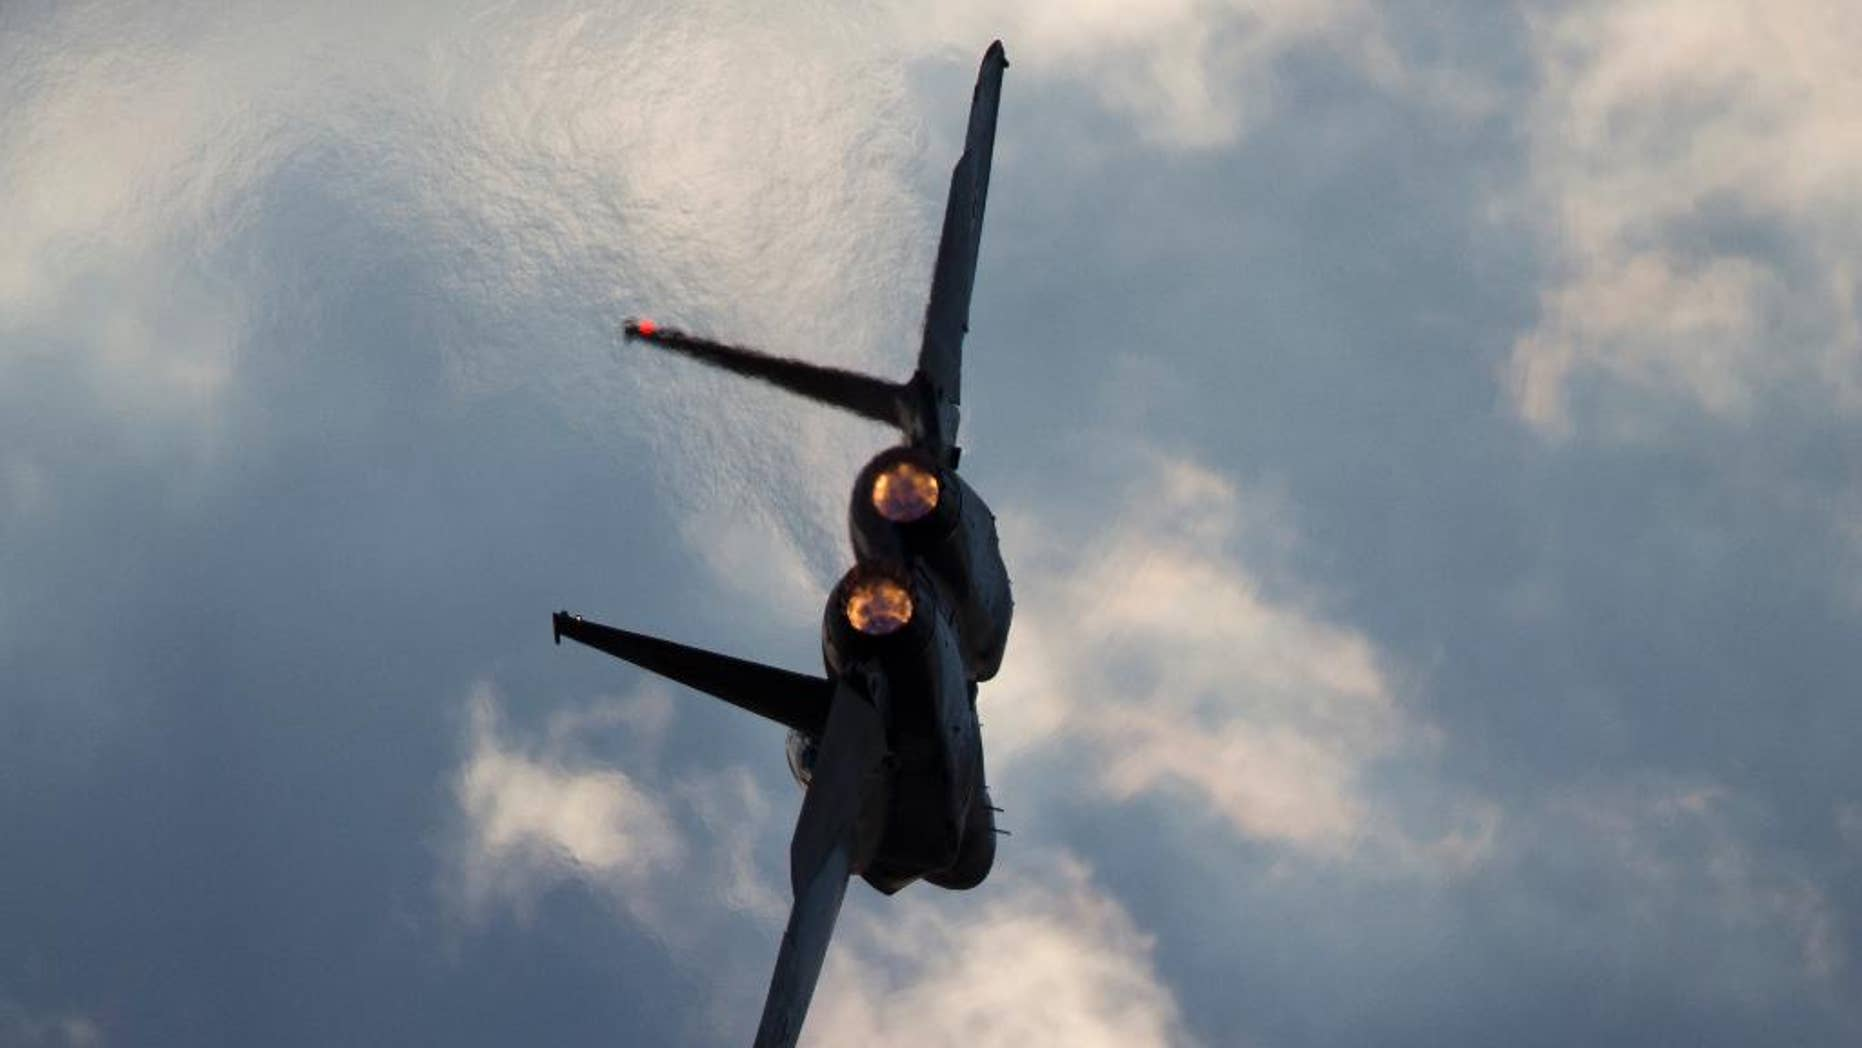 This Thursday, Dec. 29, 2016 photo shows an Israeli Air Force F-15 plane in flight during a graduation ceremony for new pilots in the Hatzerim air force base near the city of Beersheba, Israel. Anti-aircraft missiles were launched from Syria into Israeli-controlled territory early on Friday, following a series of Israeli airstrikes inside Syria, the Israeli military said. The military said its warplanes struck several targets in Syria and were back in Israeli-controlled airspace when several anti-aircraft missiles were launched from Syria toward the Israeli jets. (AP Photo/Ariel Schalit)